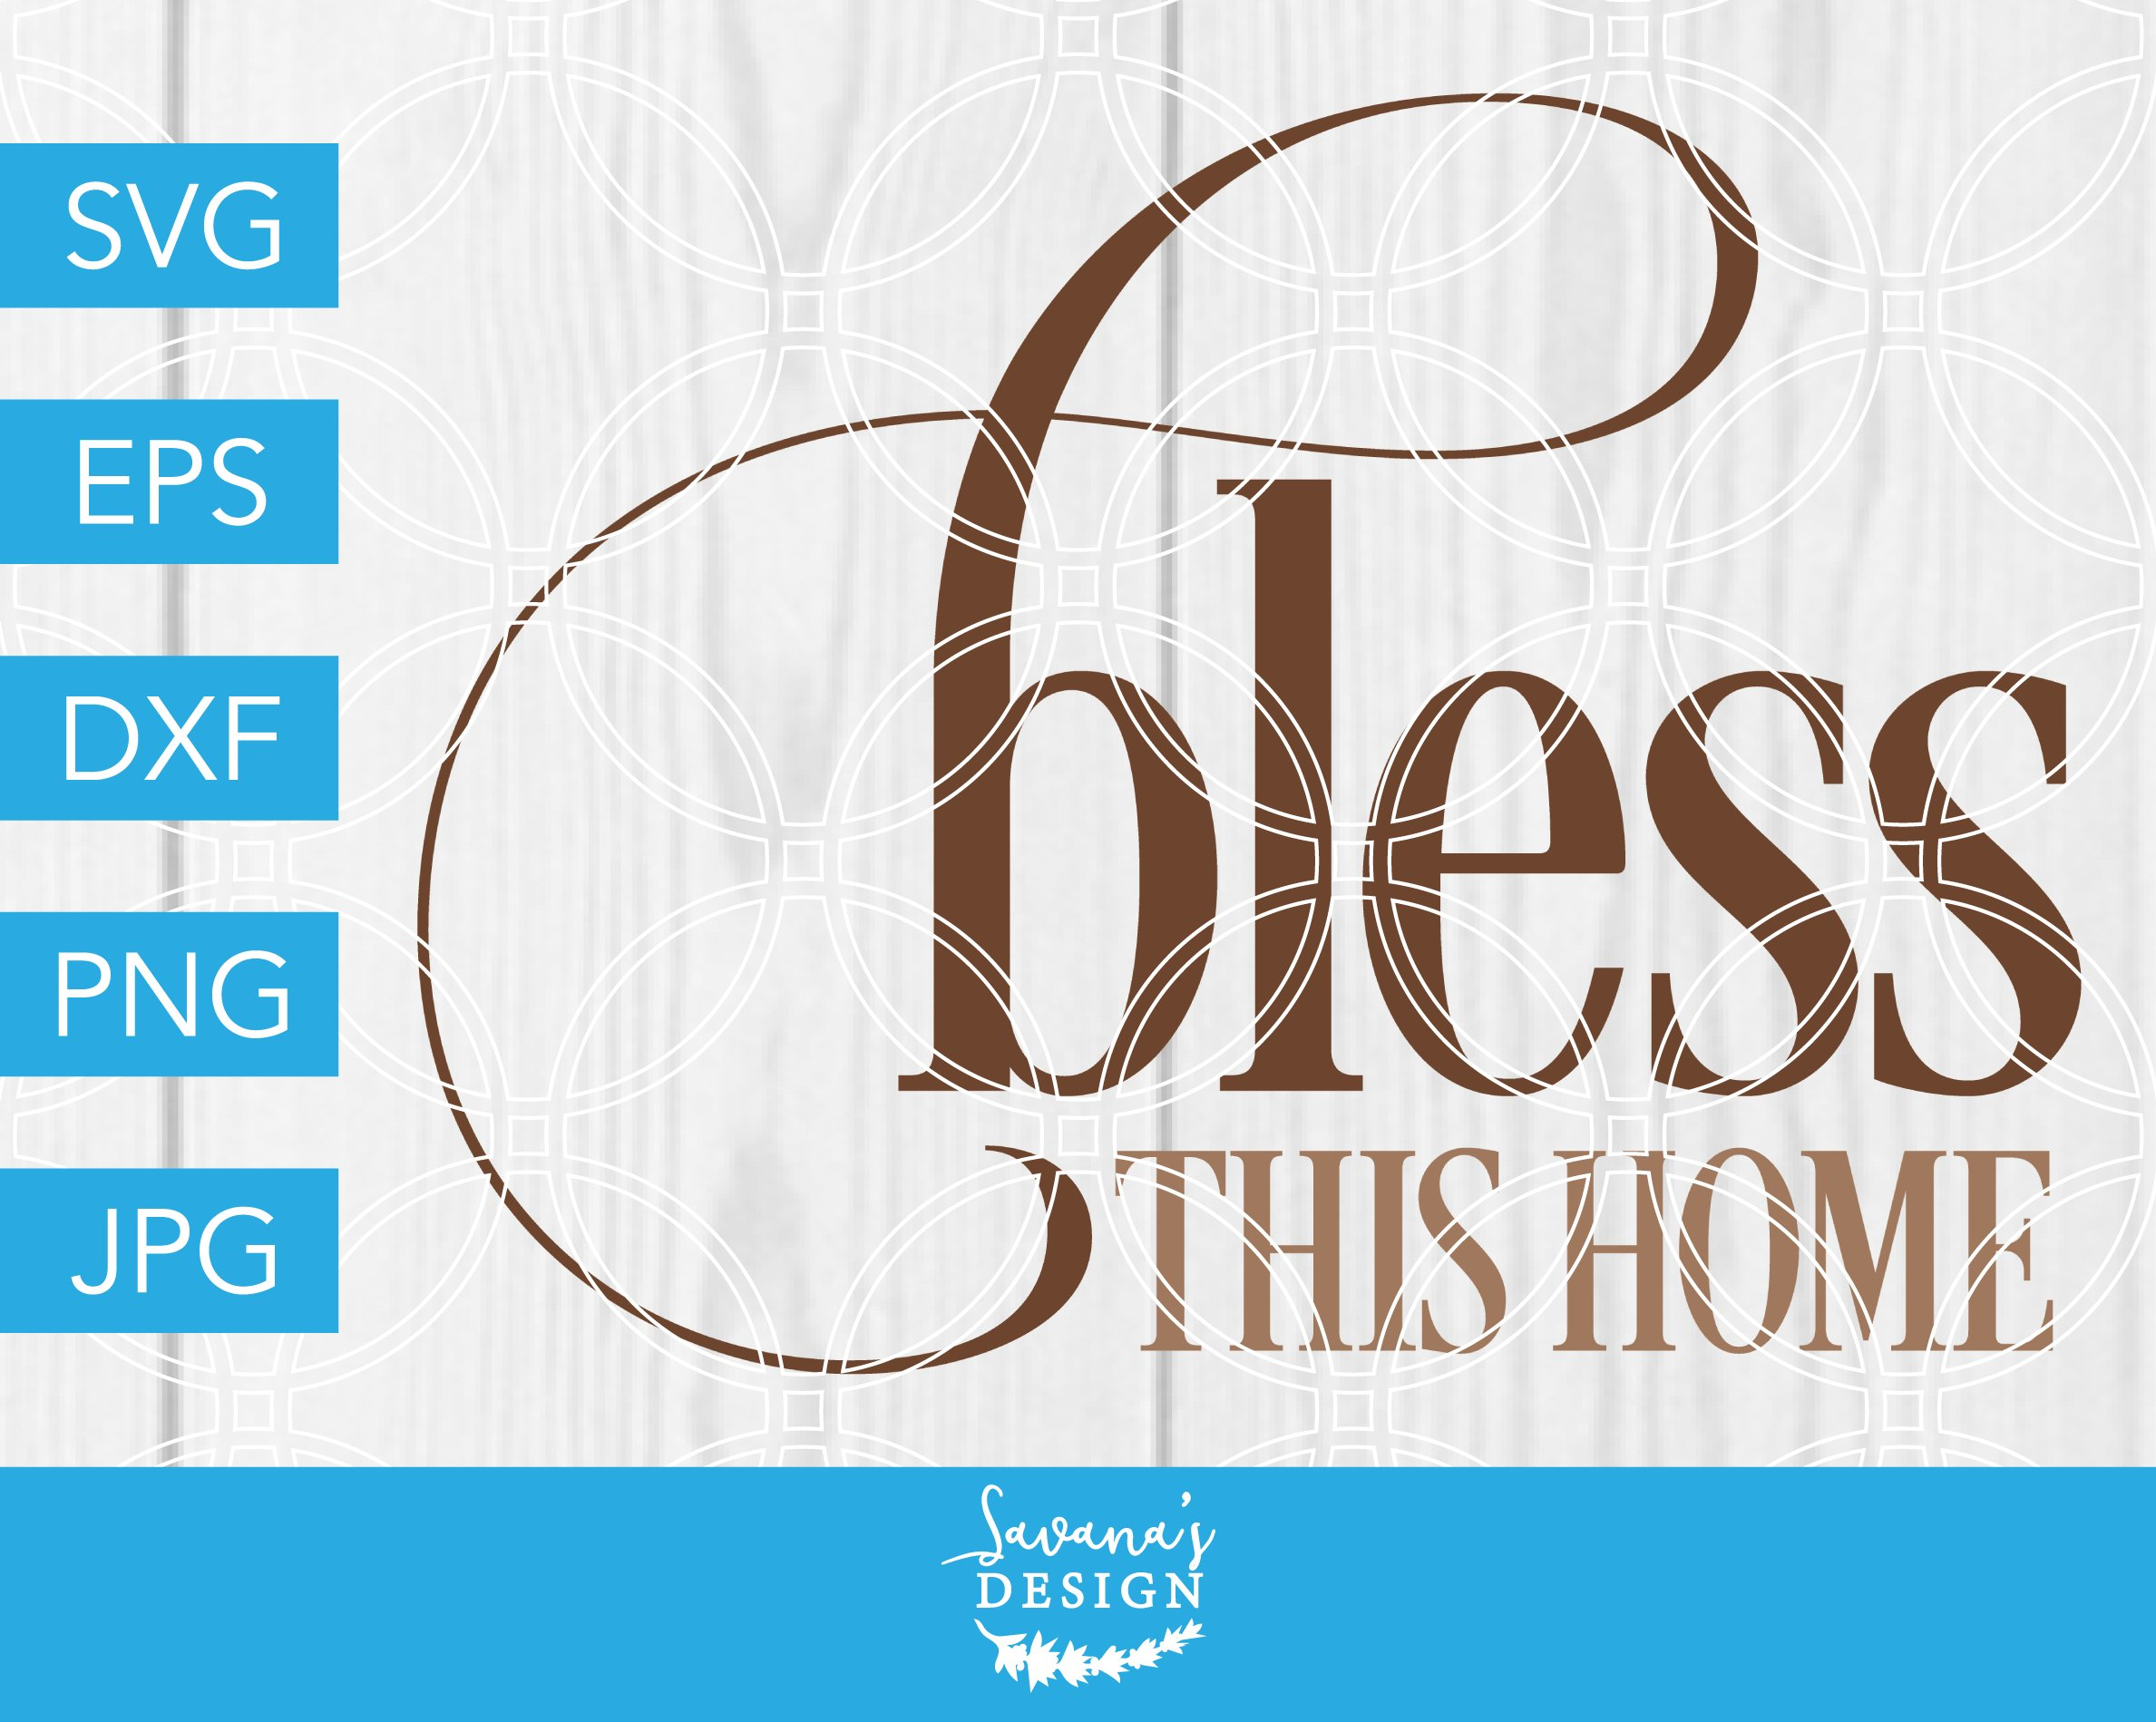 Download Bless This Home Cutting Design Image